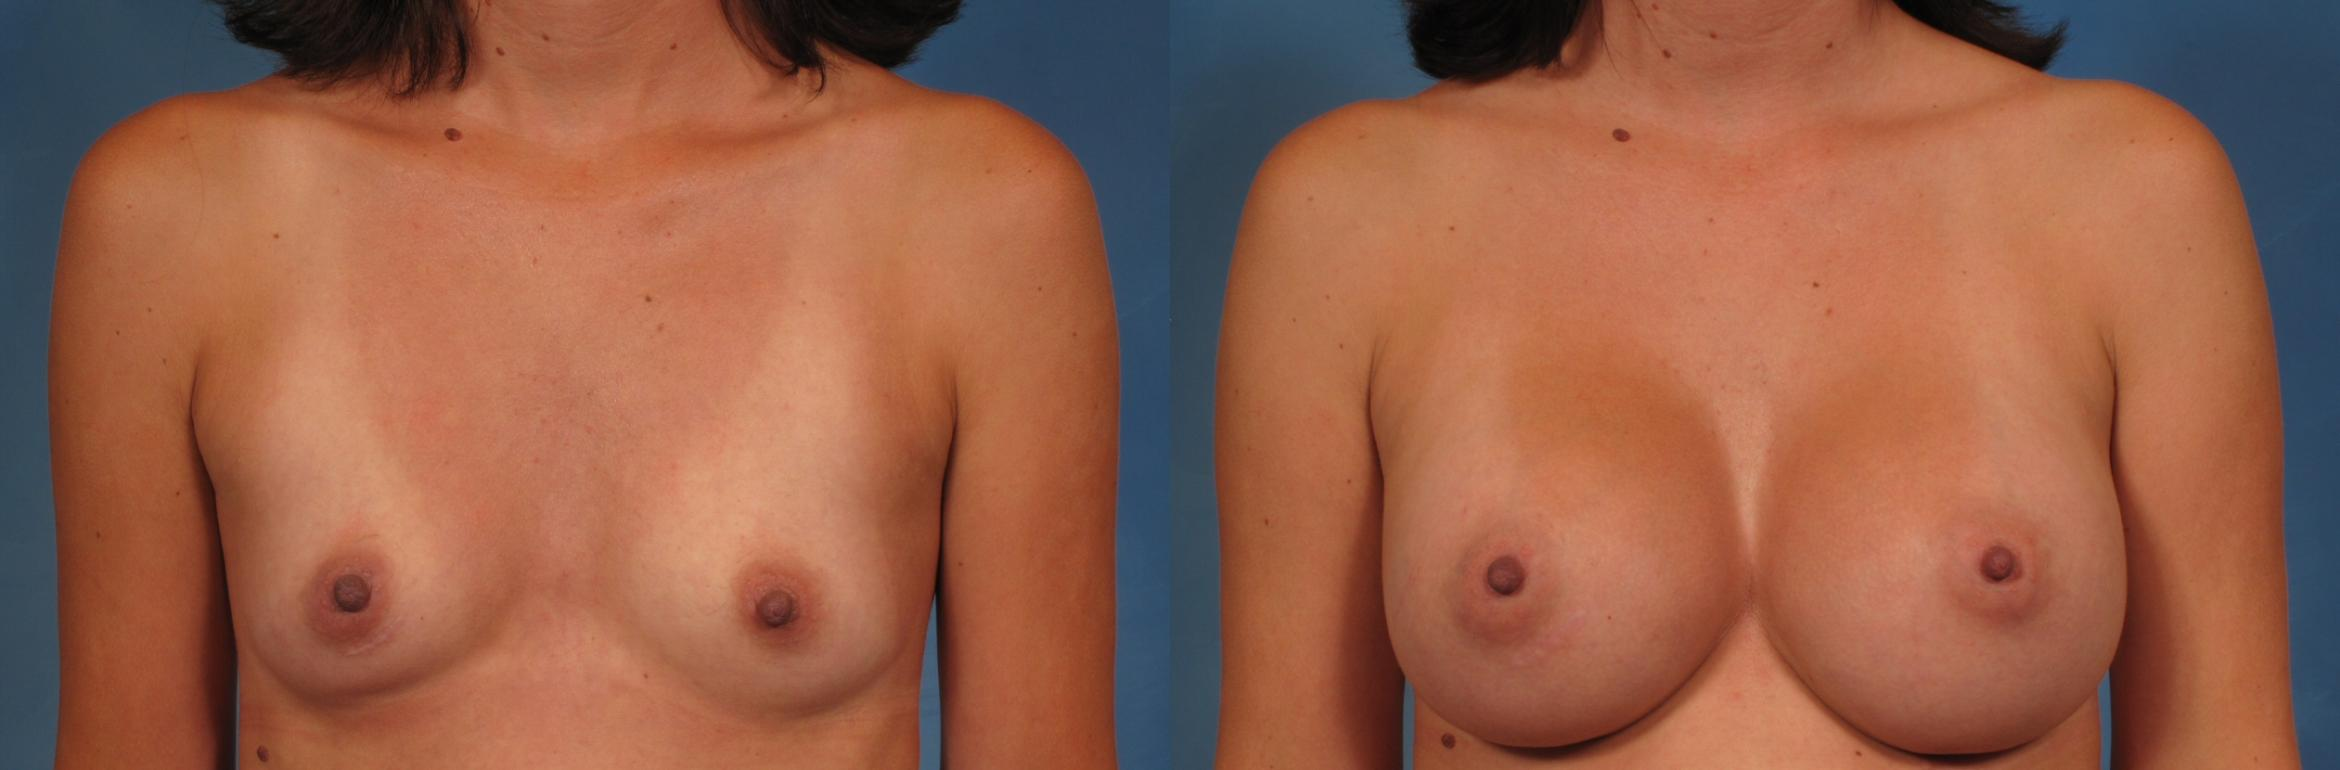 Breast Augmentation Case 249 Before & After View #1 | Naples, FL | Kent V. Hasen, M.D.